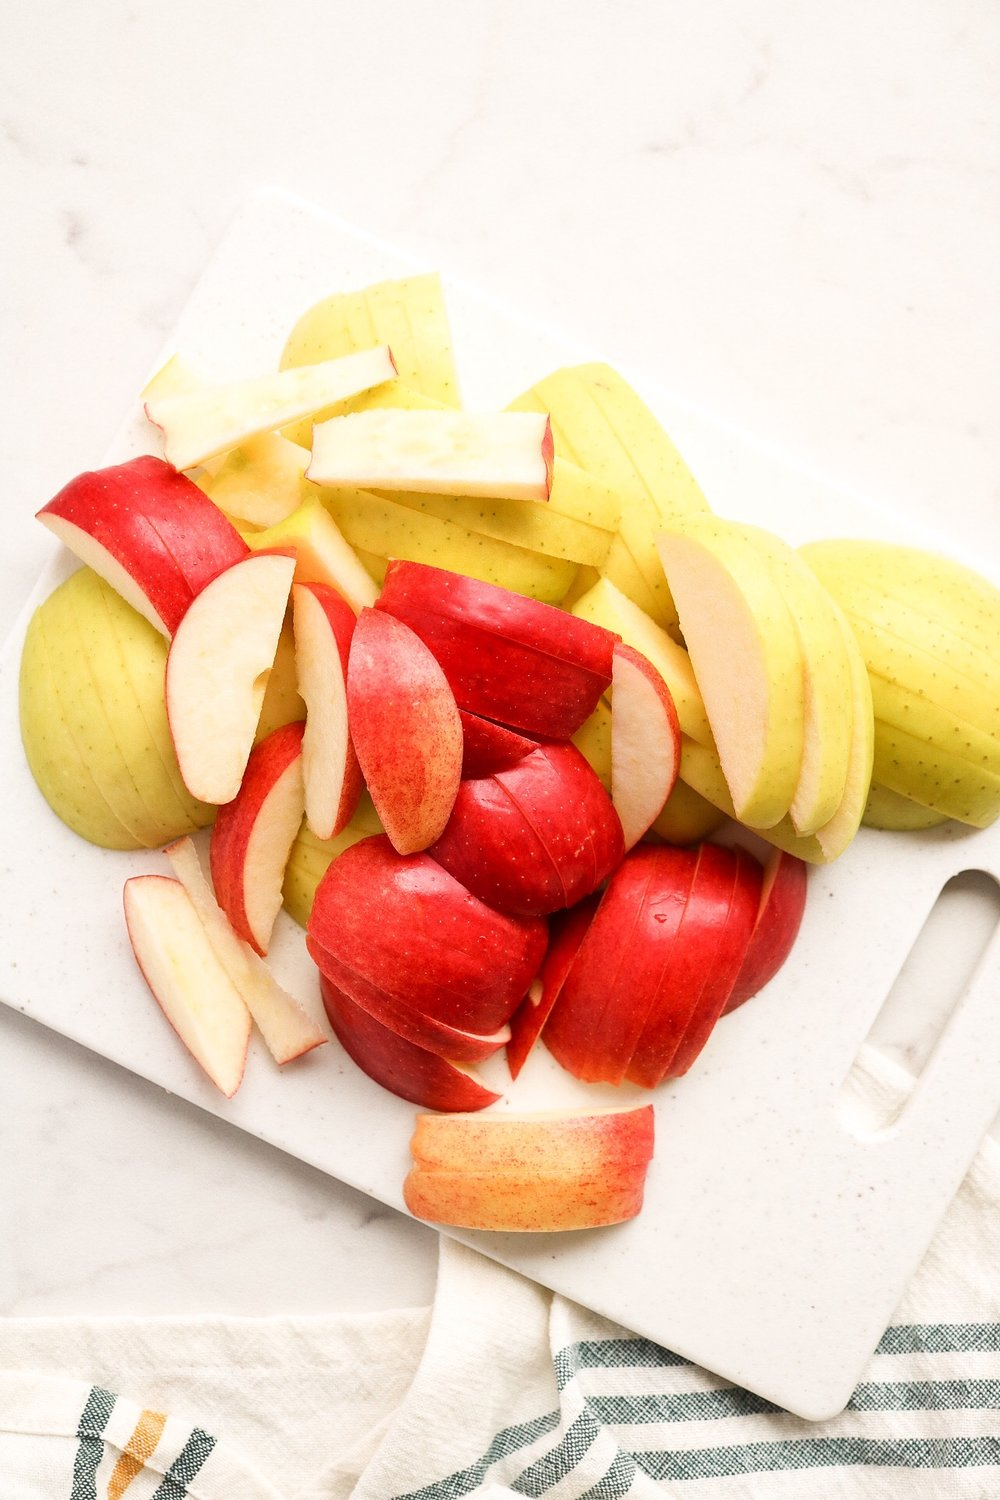 Slice up your apples for the filling.